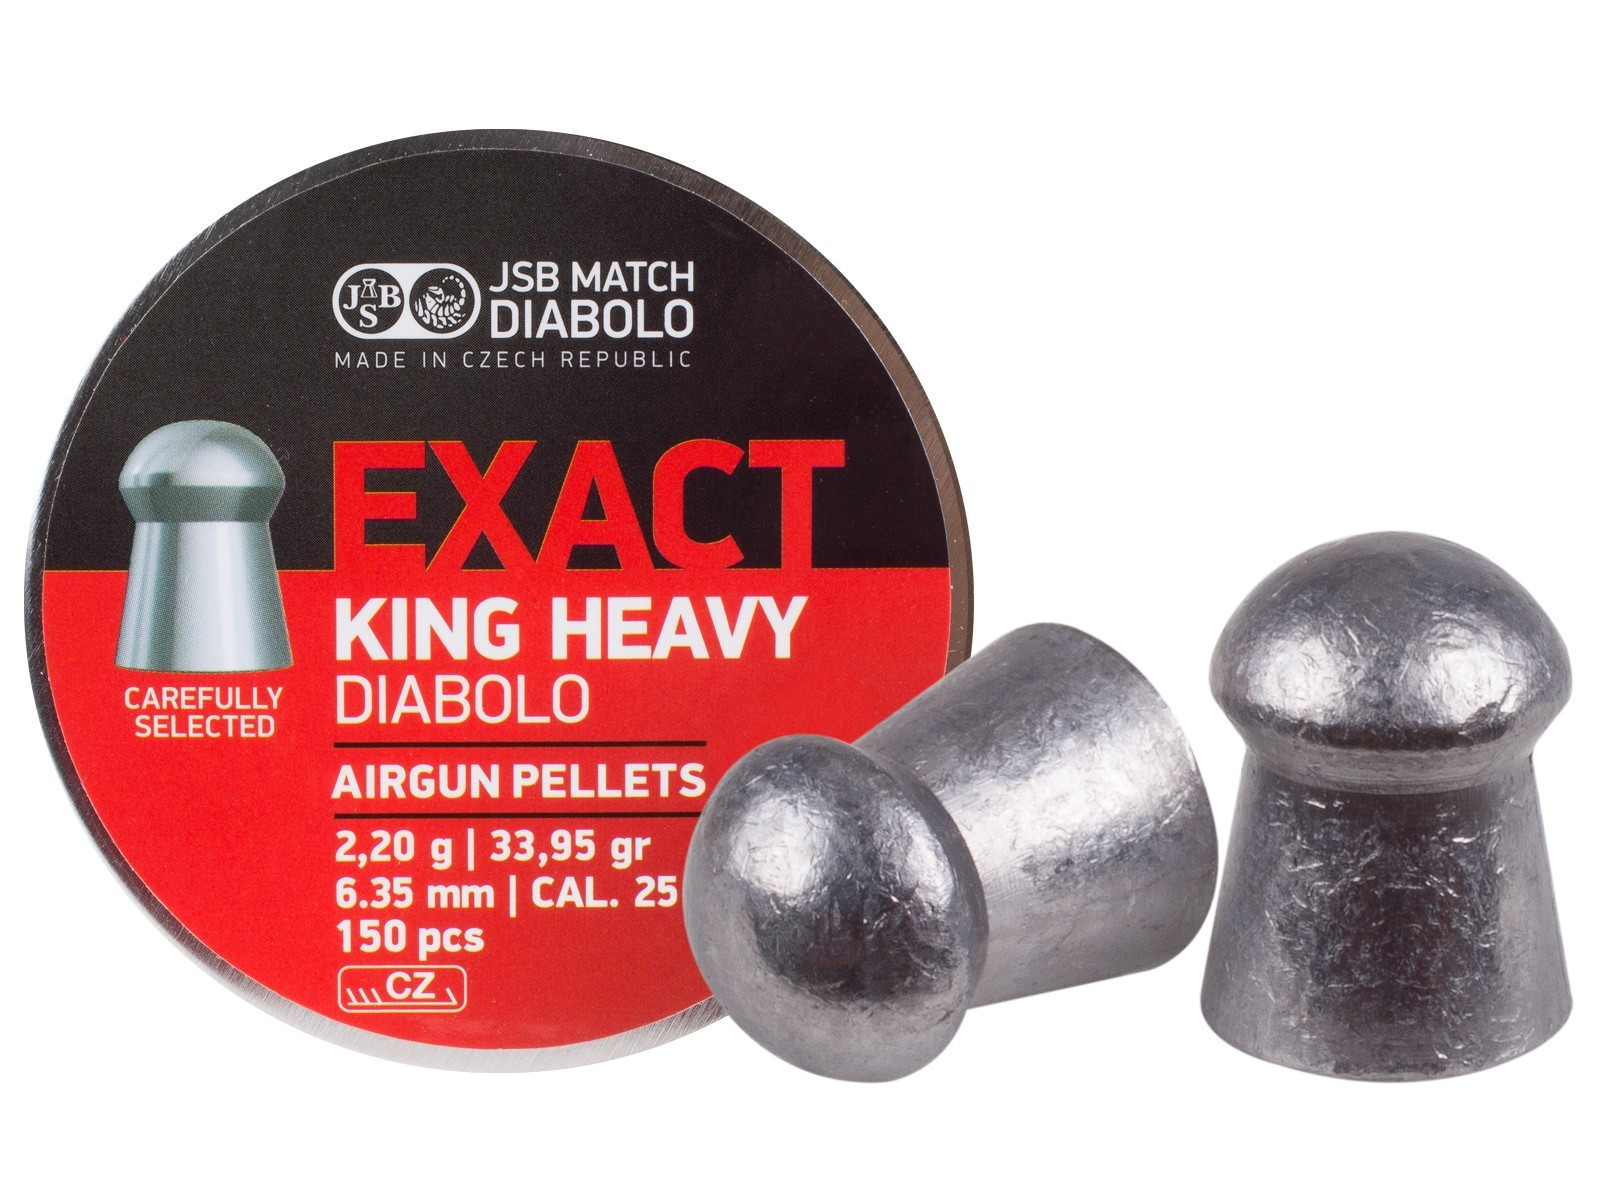 JSB Diabolo Exact King Heavy .25 Cal, 33.95 gr - 150 ct